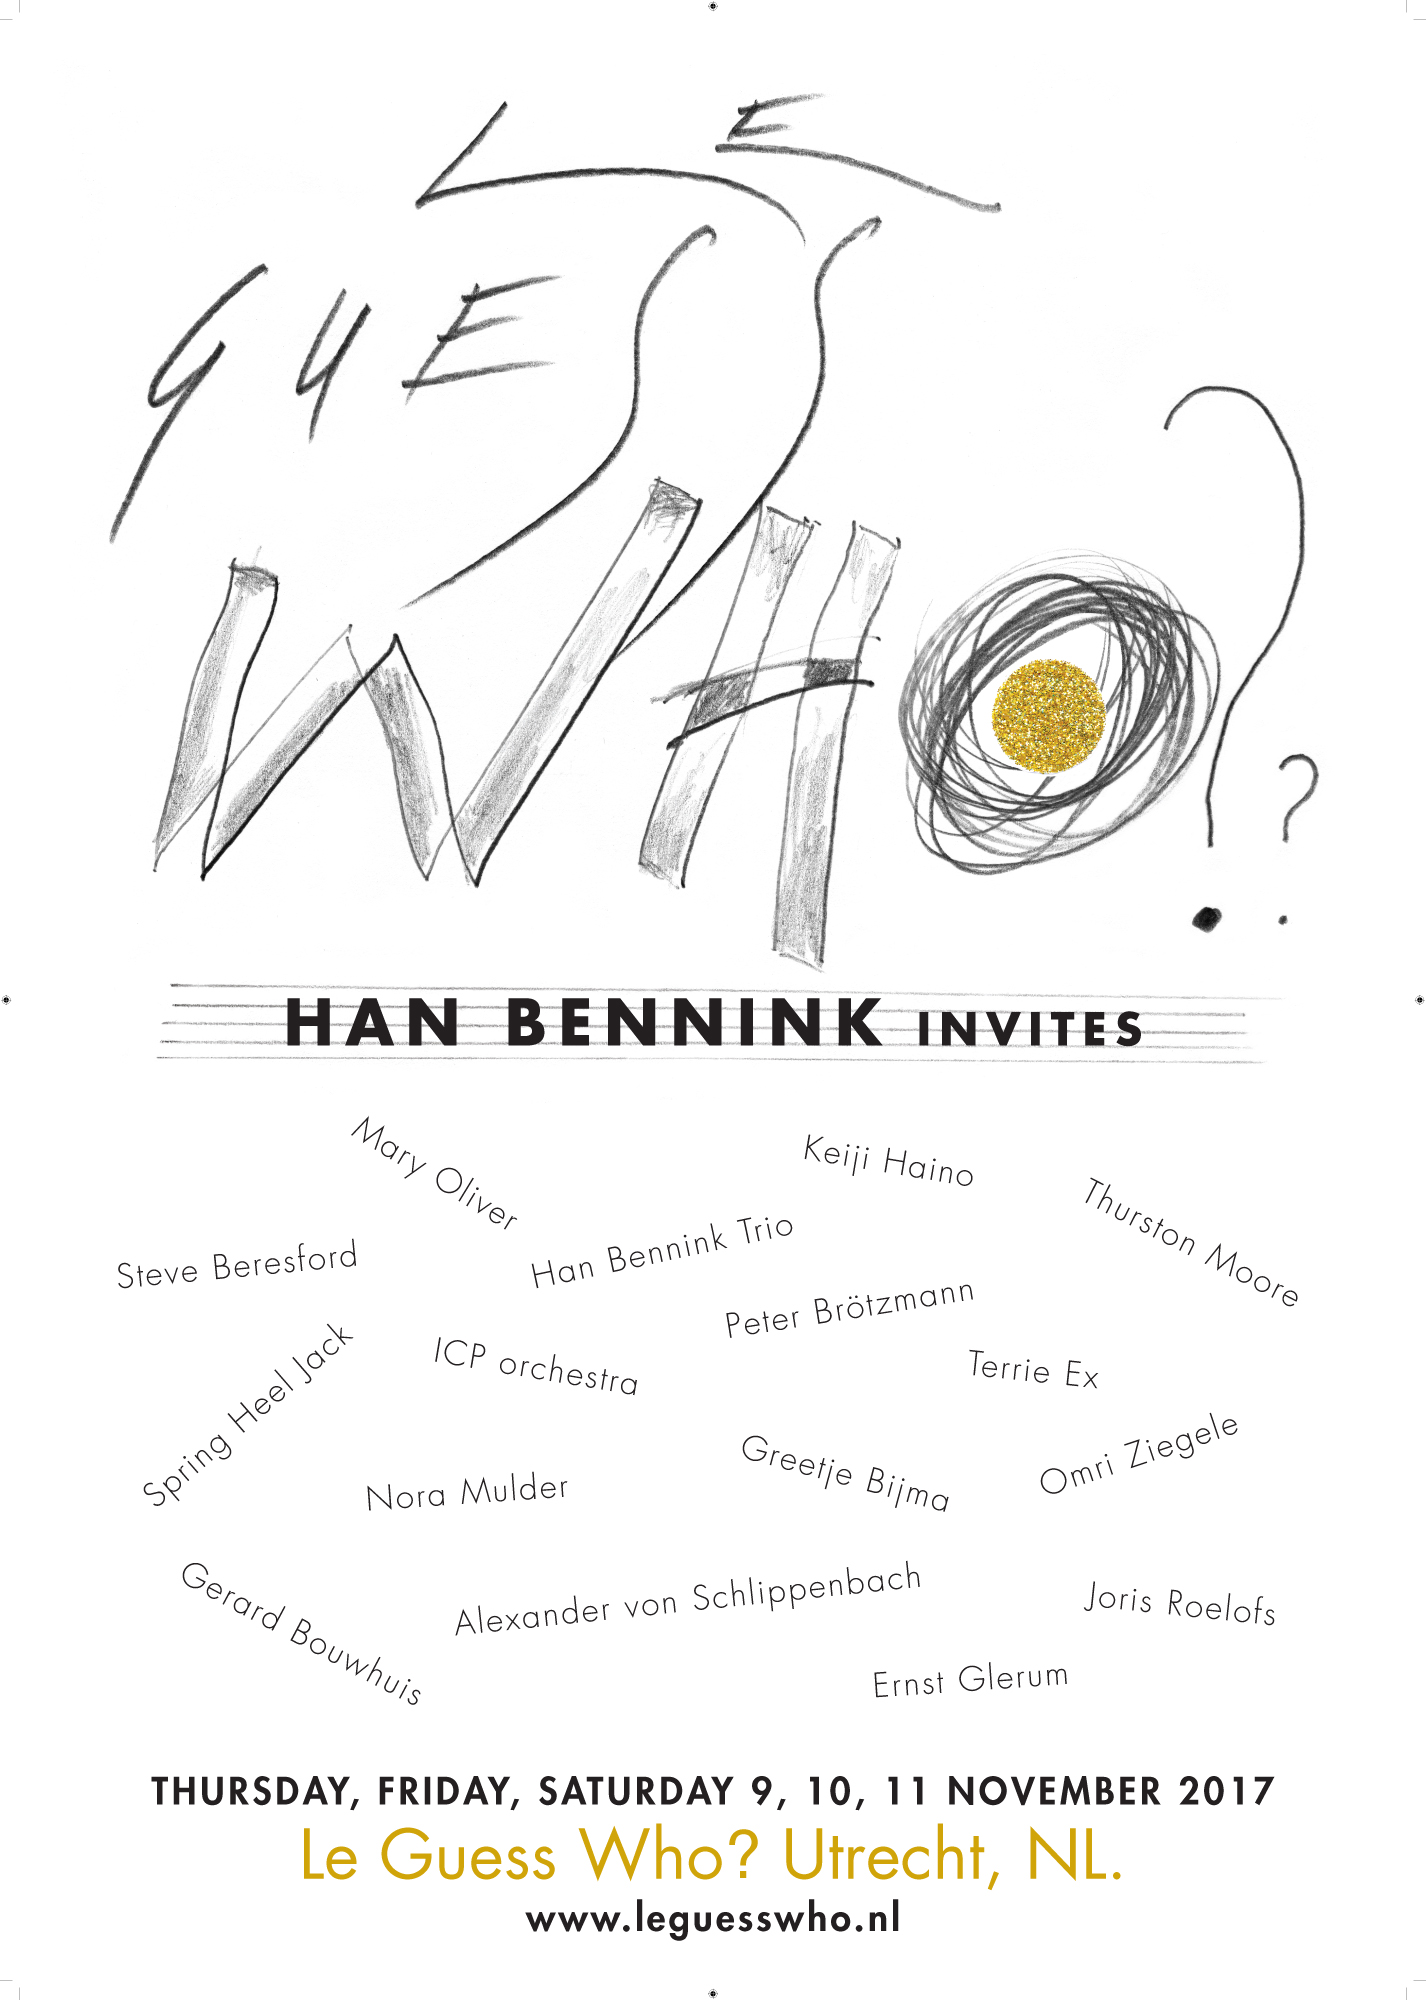 Explore Han Bennink's curated program for Le Guess Who? 2017